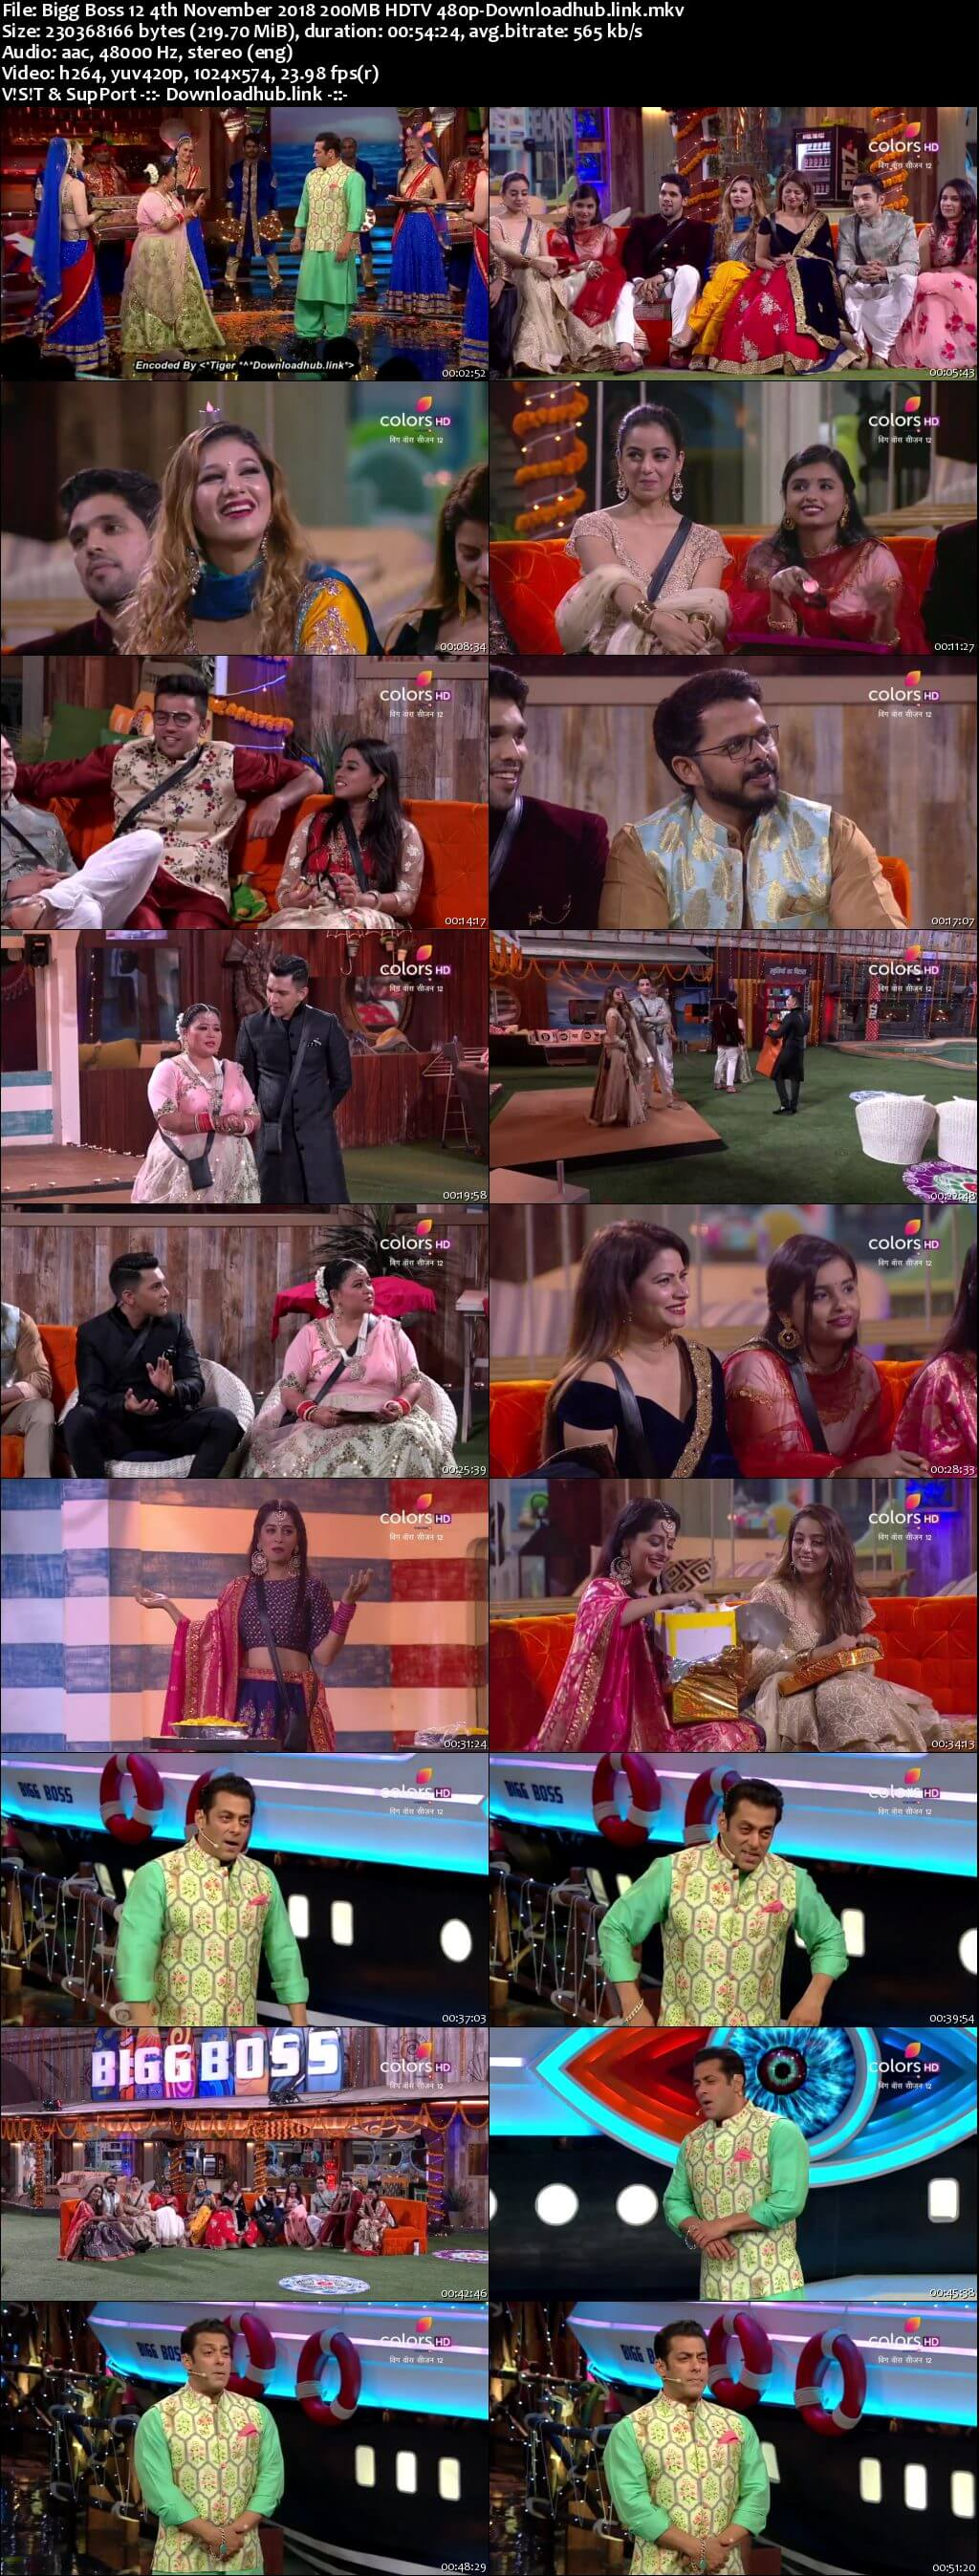 Bigg Boss 12 04 November 2018 Episode 49 HDTV 480p